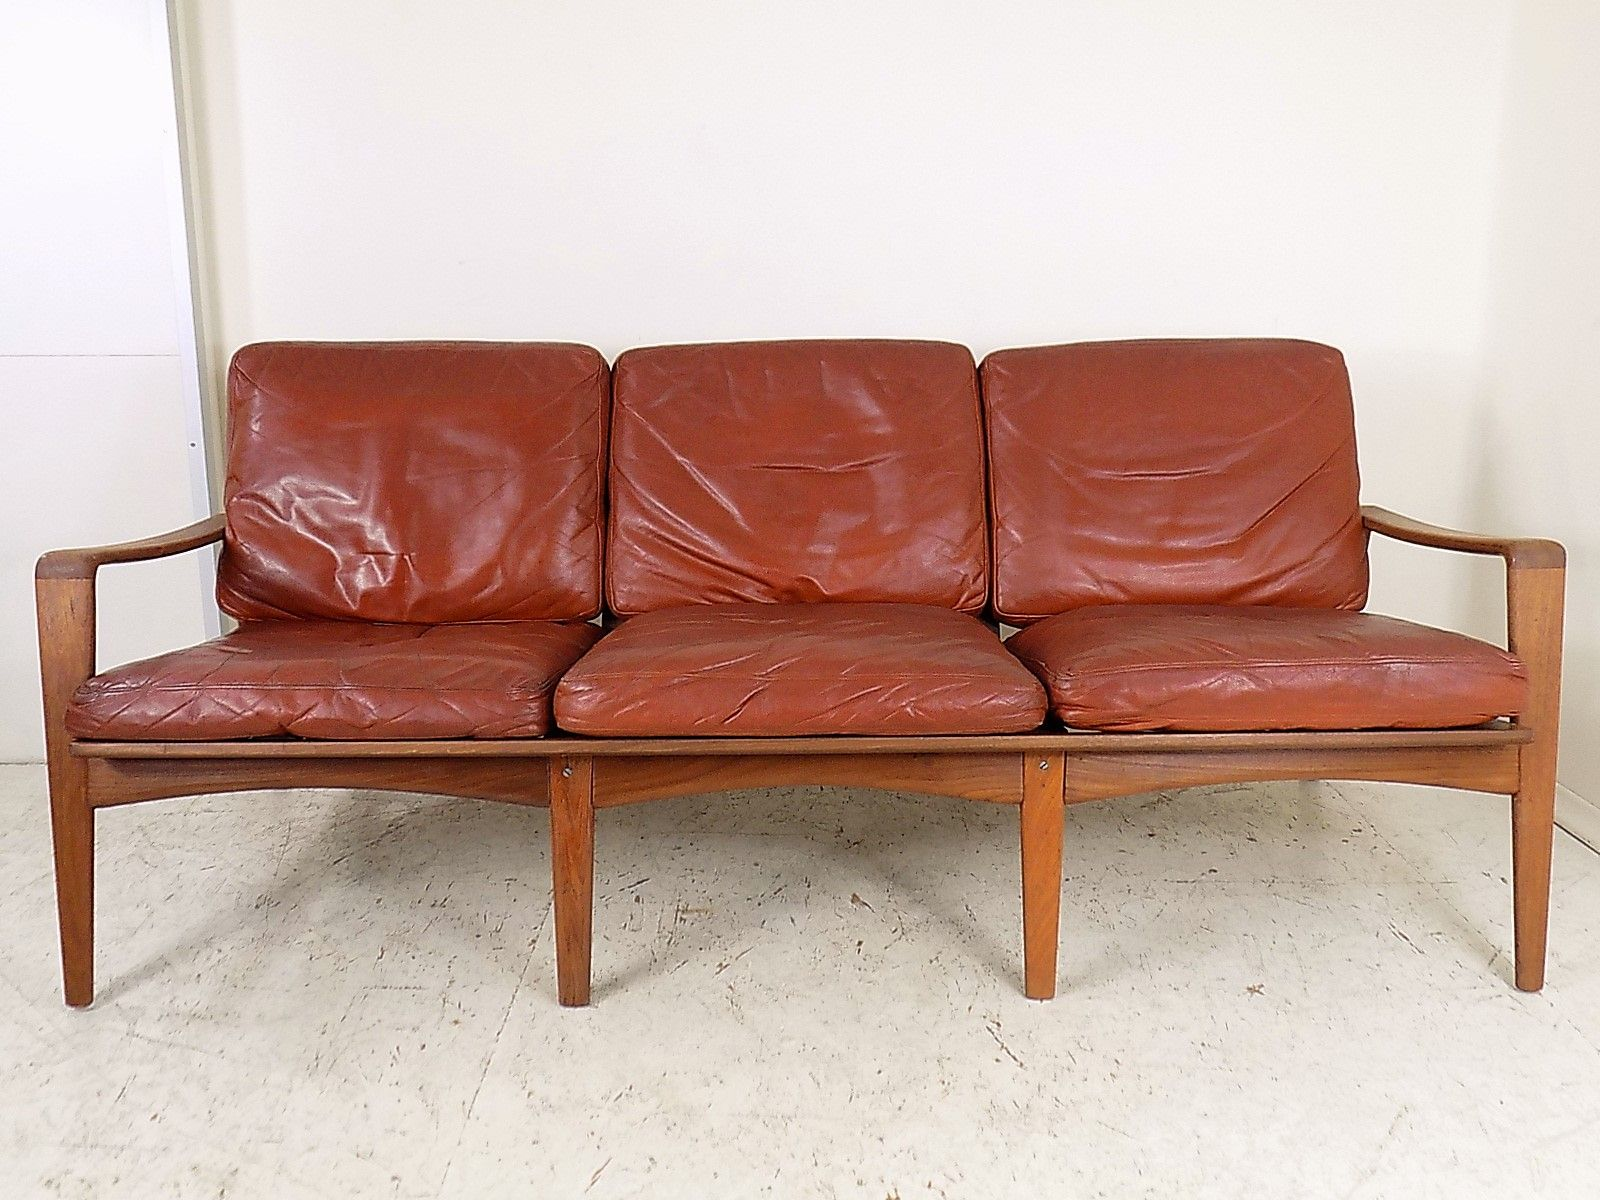 braunes sofa aus leder teak von arne wahl iversen f r komfort 1960er bei pamono kaufen. Black Bedroom Furniture Sets. Home Design Ideas